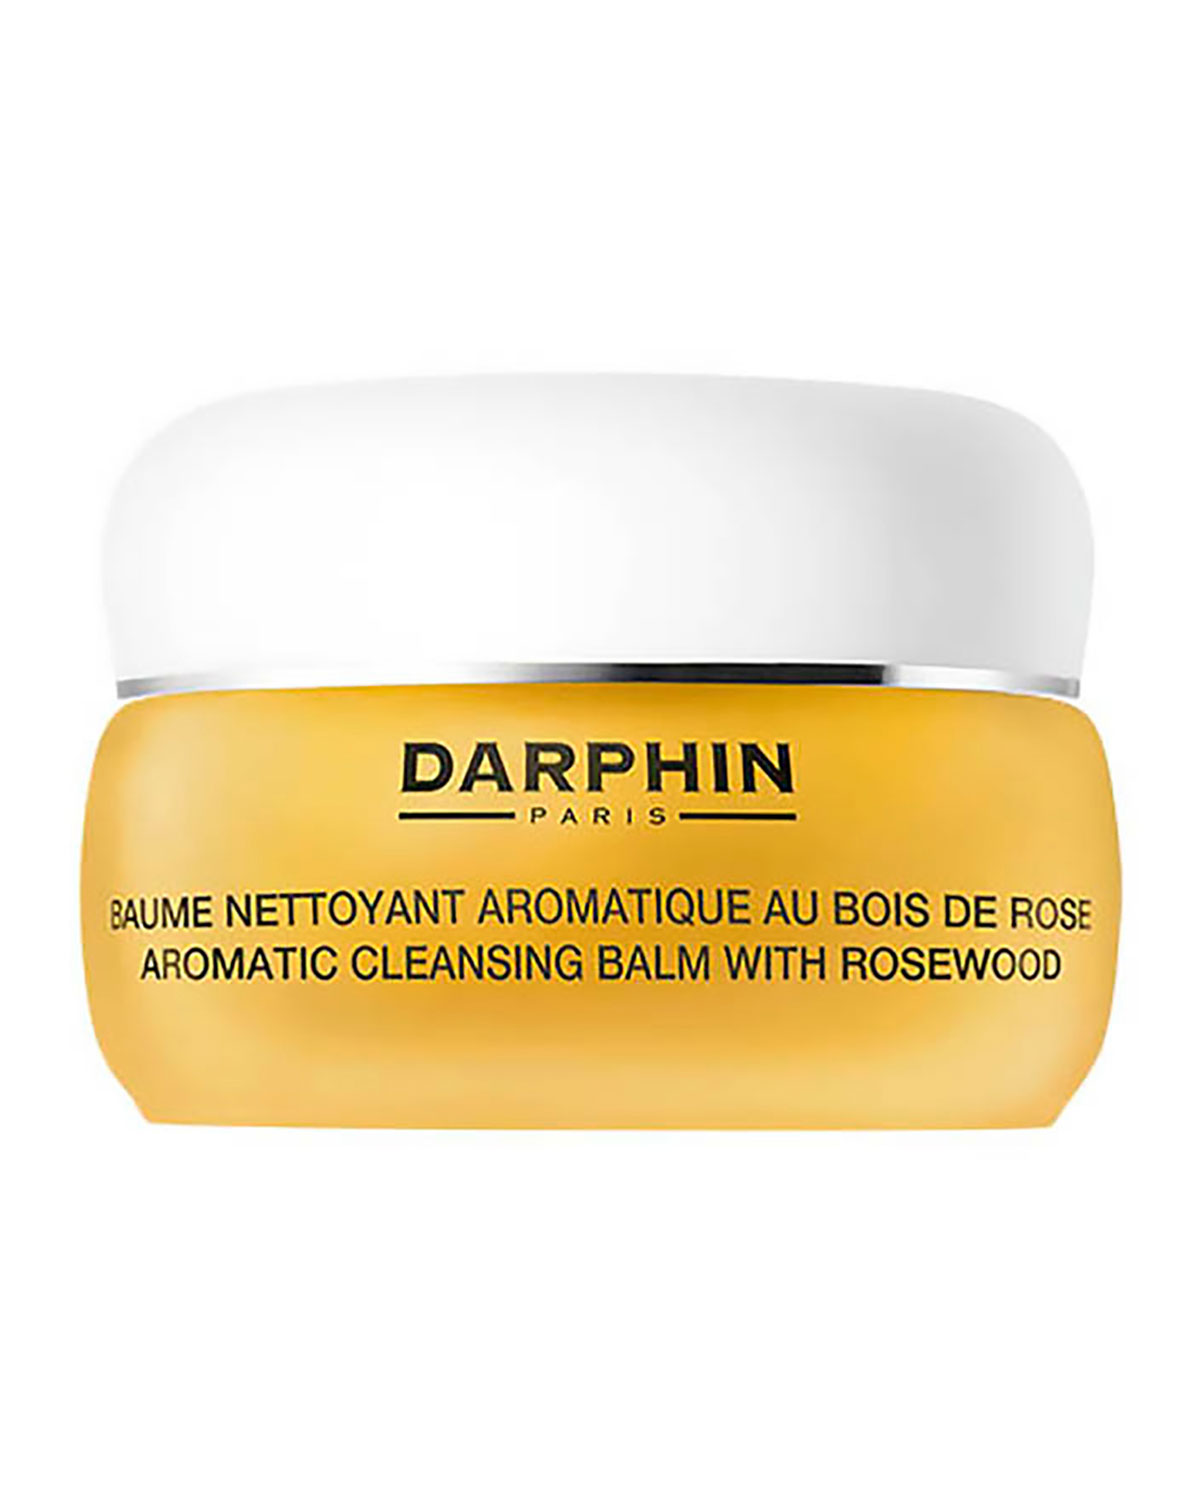 Aromatic Cleansing Balm 40ml - Darphin